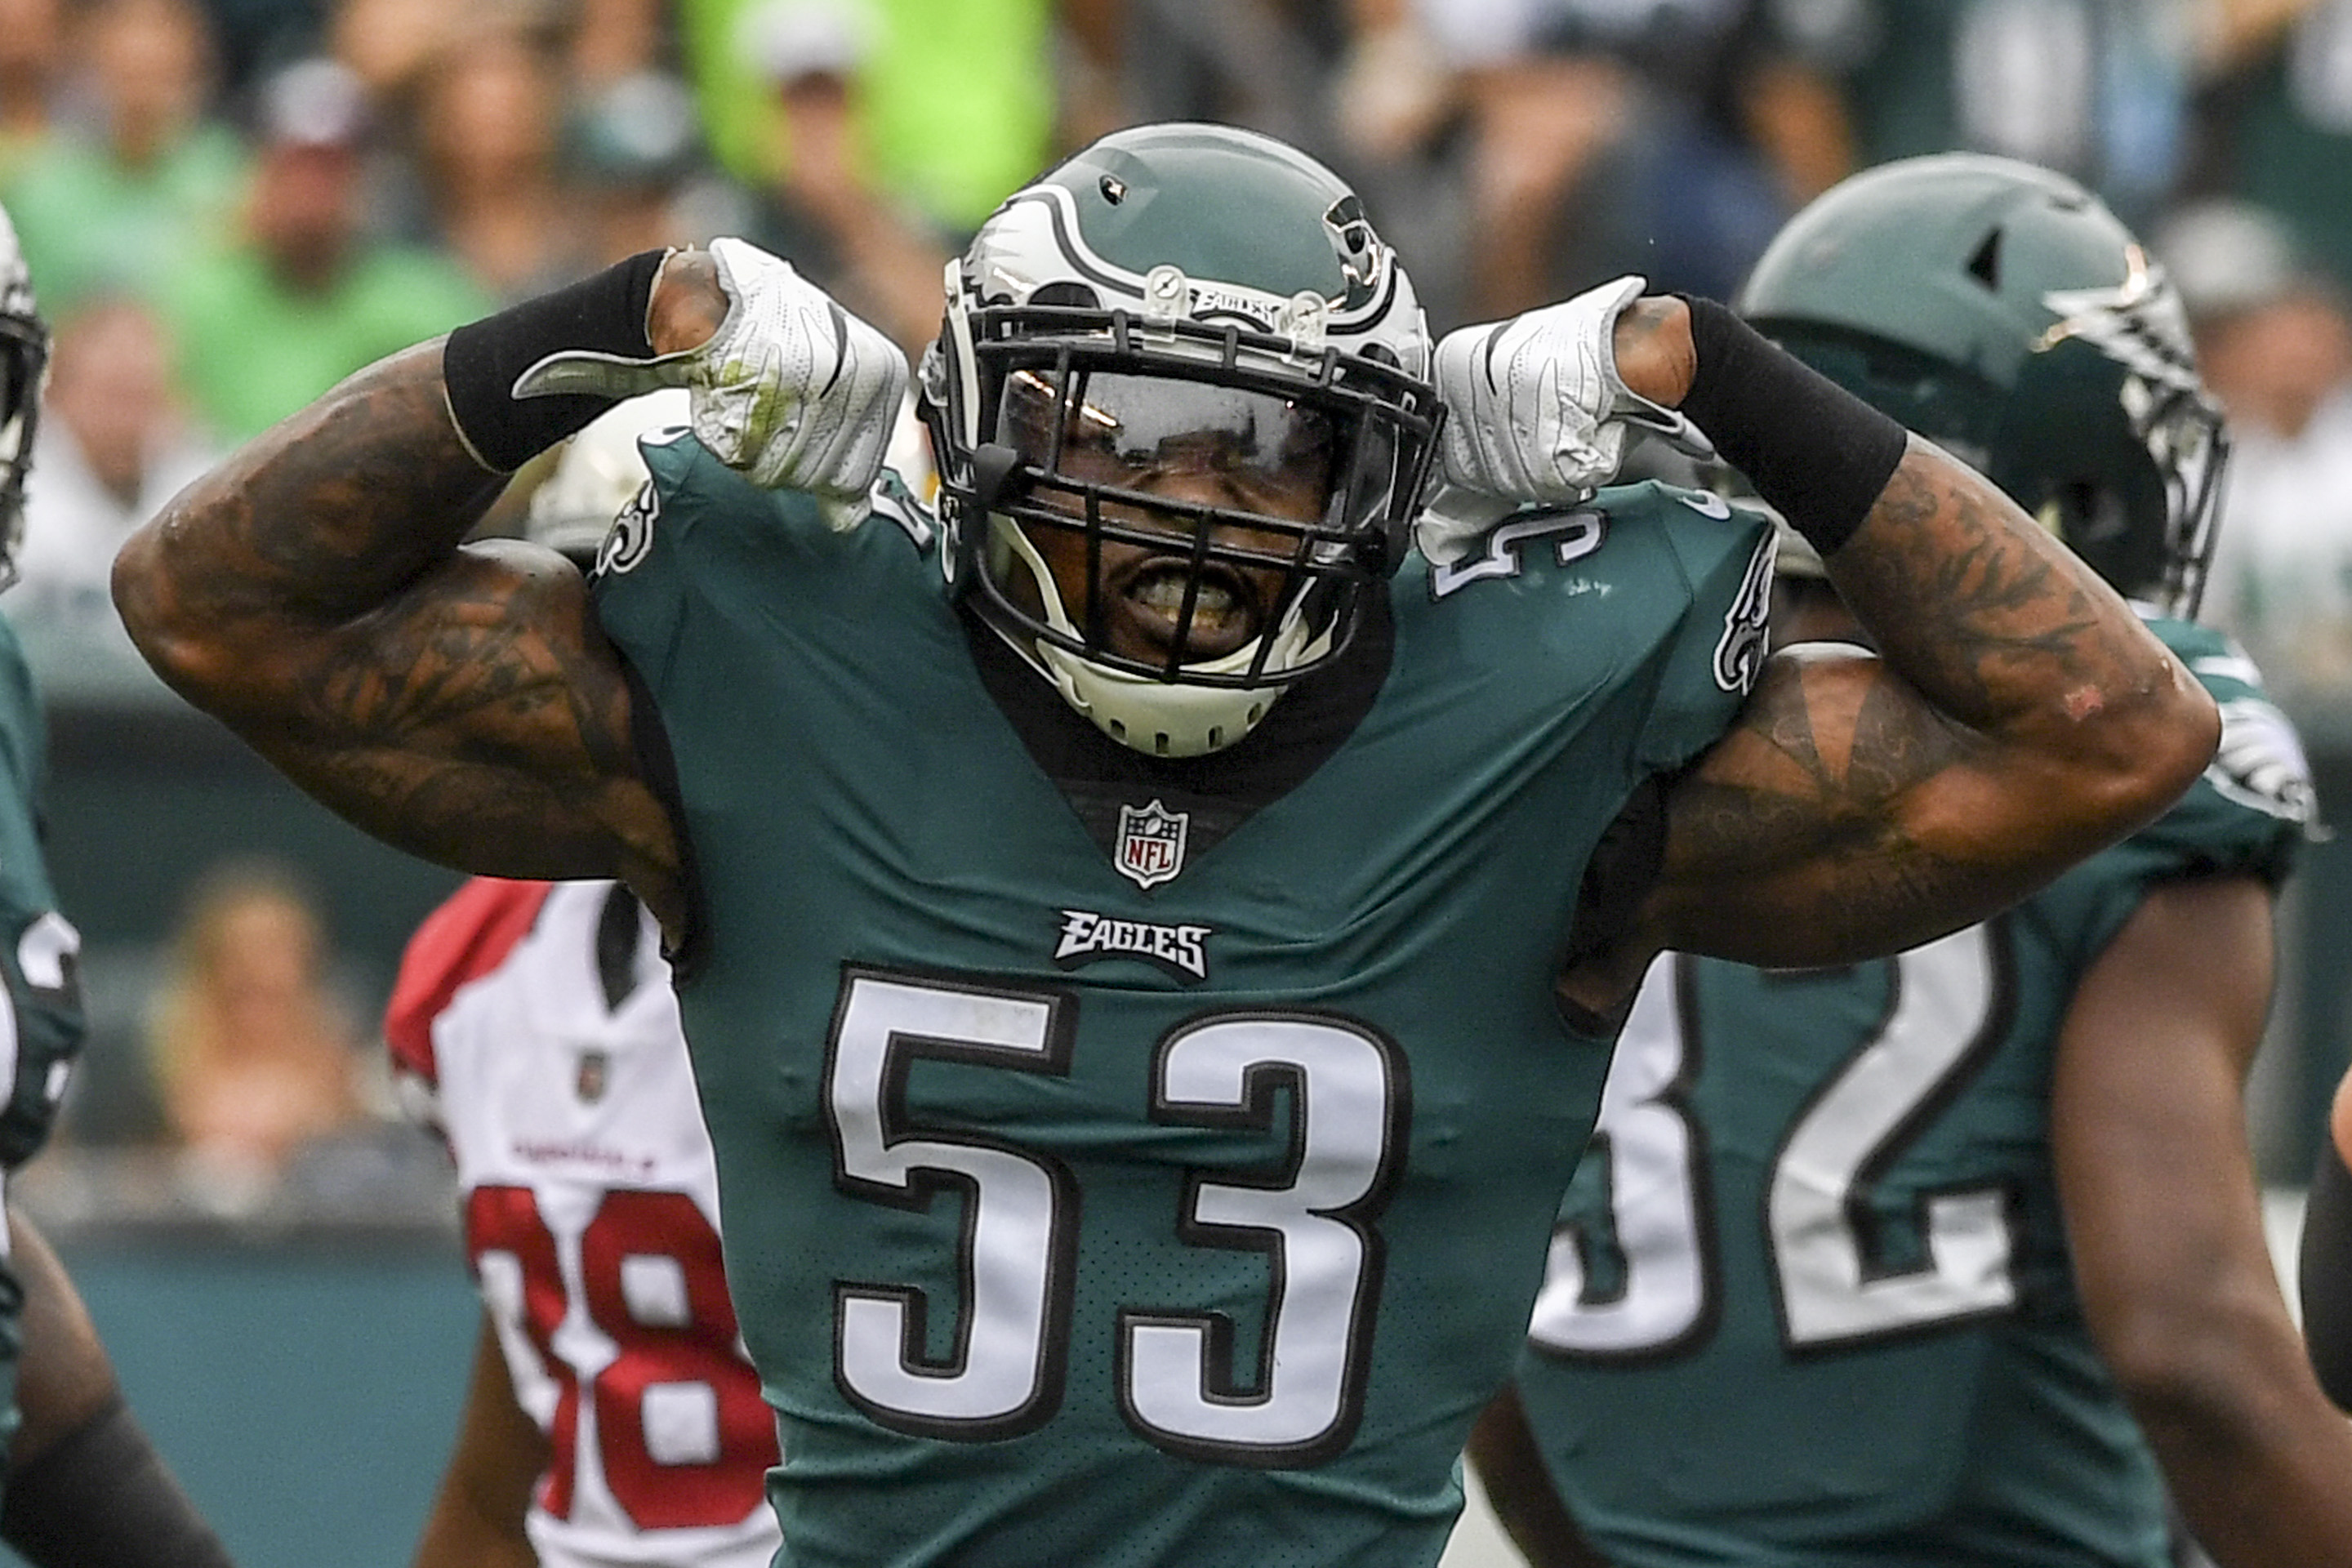 Linebacker Nigel Bradham knows the defense is going to have to carry the Eagles in the postseason. CLEM MURRAY / Staff Photographer